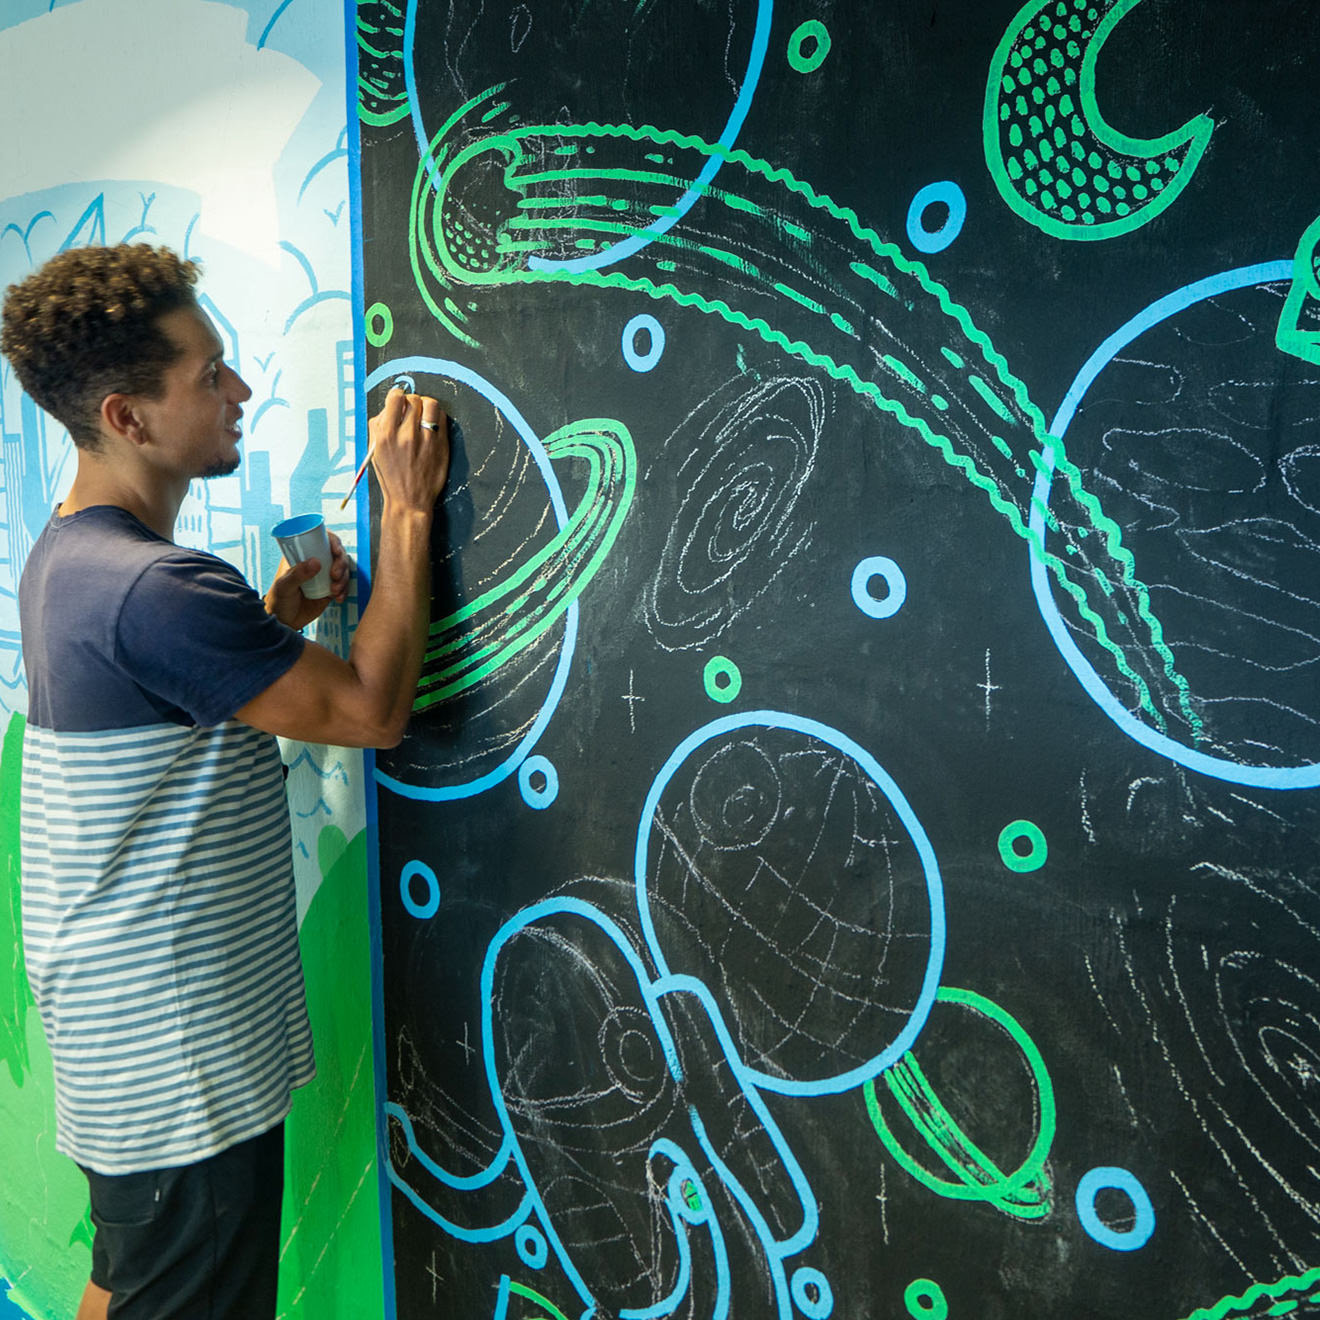 Man painting a blue-ringed planed onto a dark wall as part of a larger mural